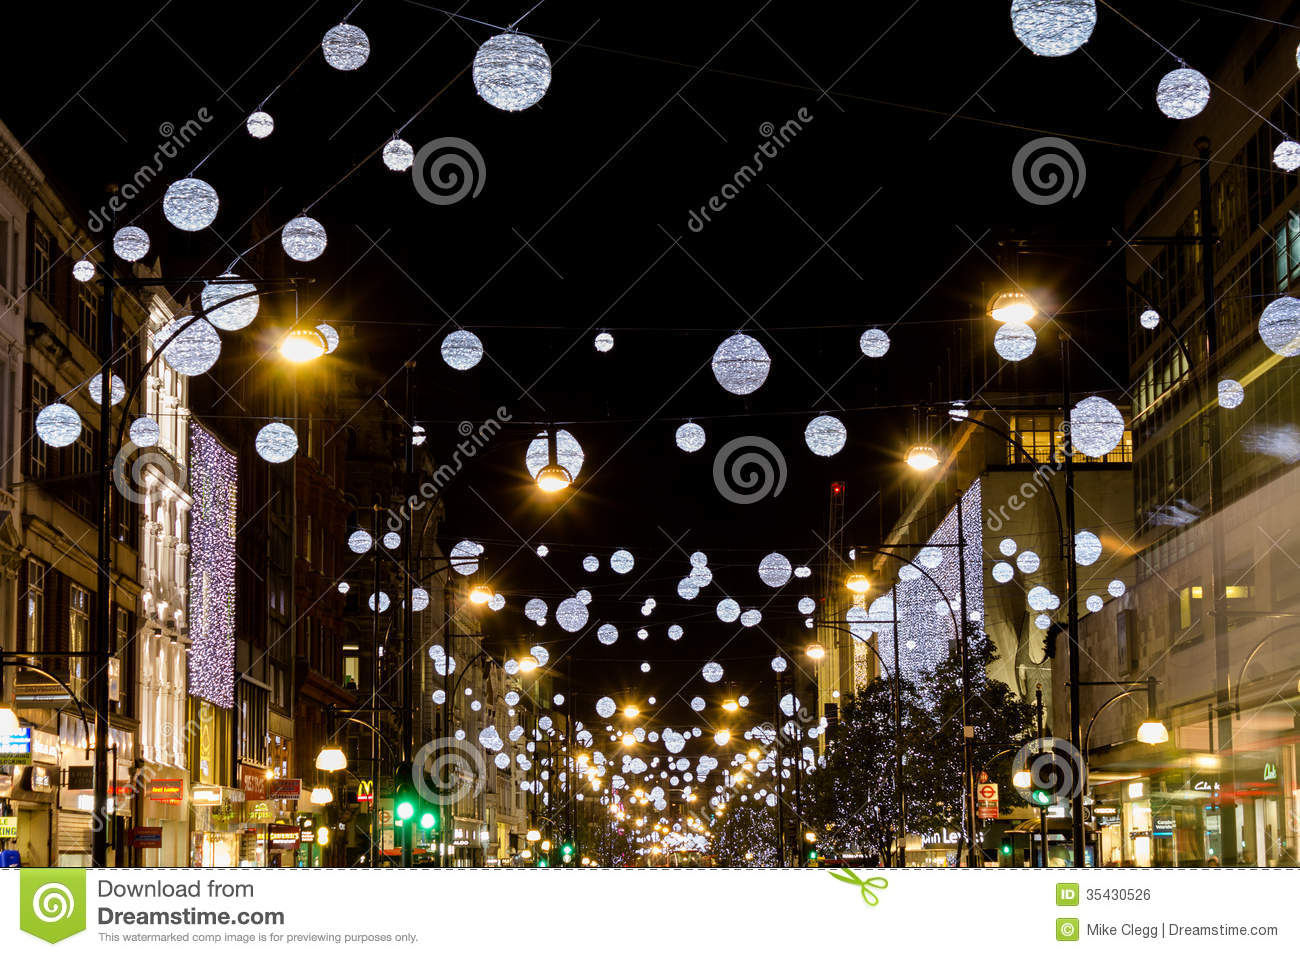 download oxford street christmas lights 2013 editorial photo image of shop christmas 35430526